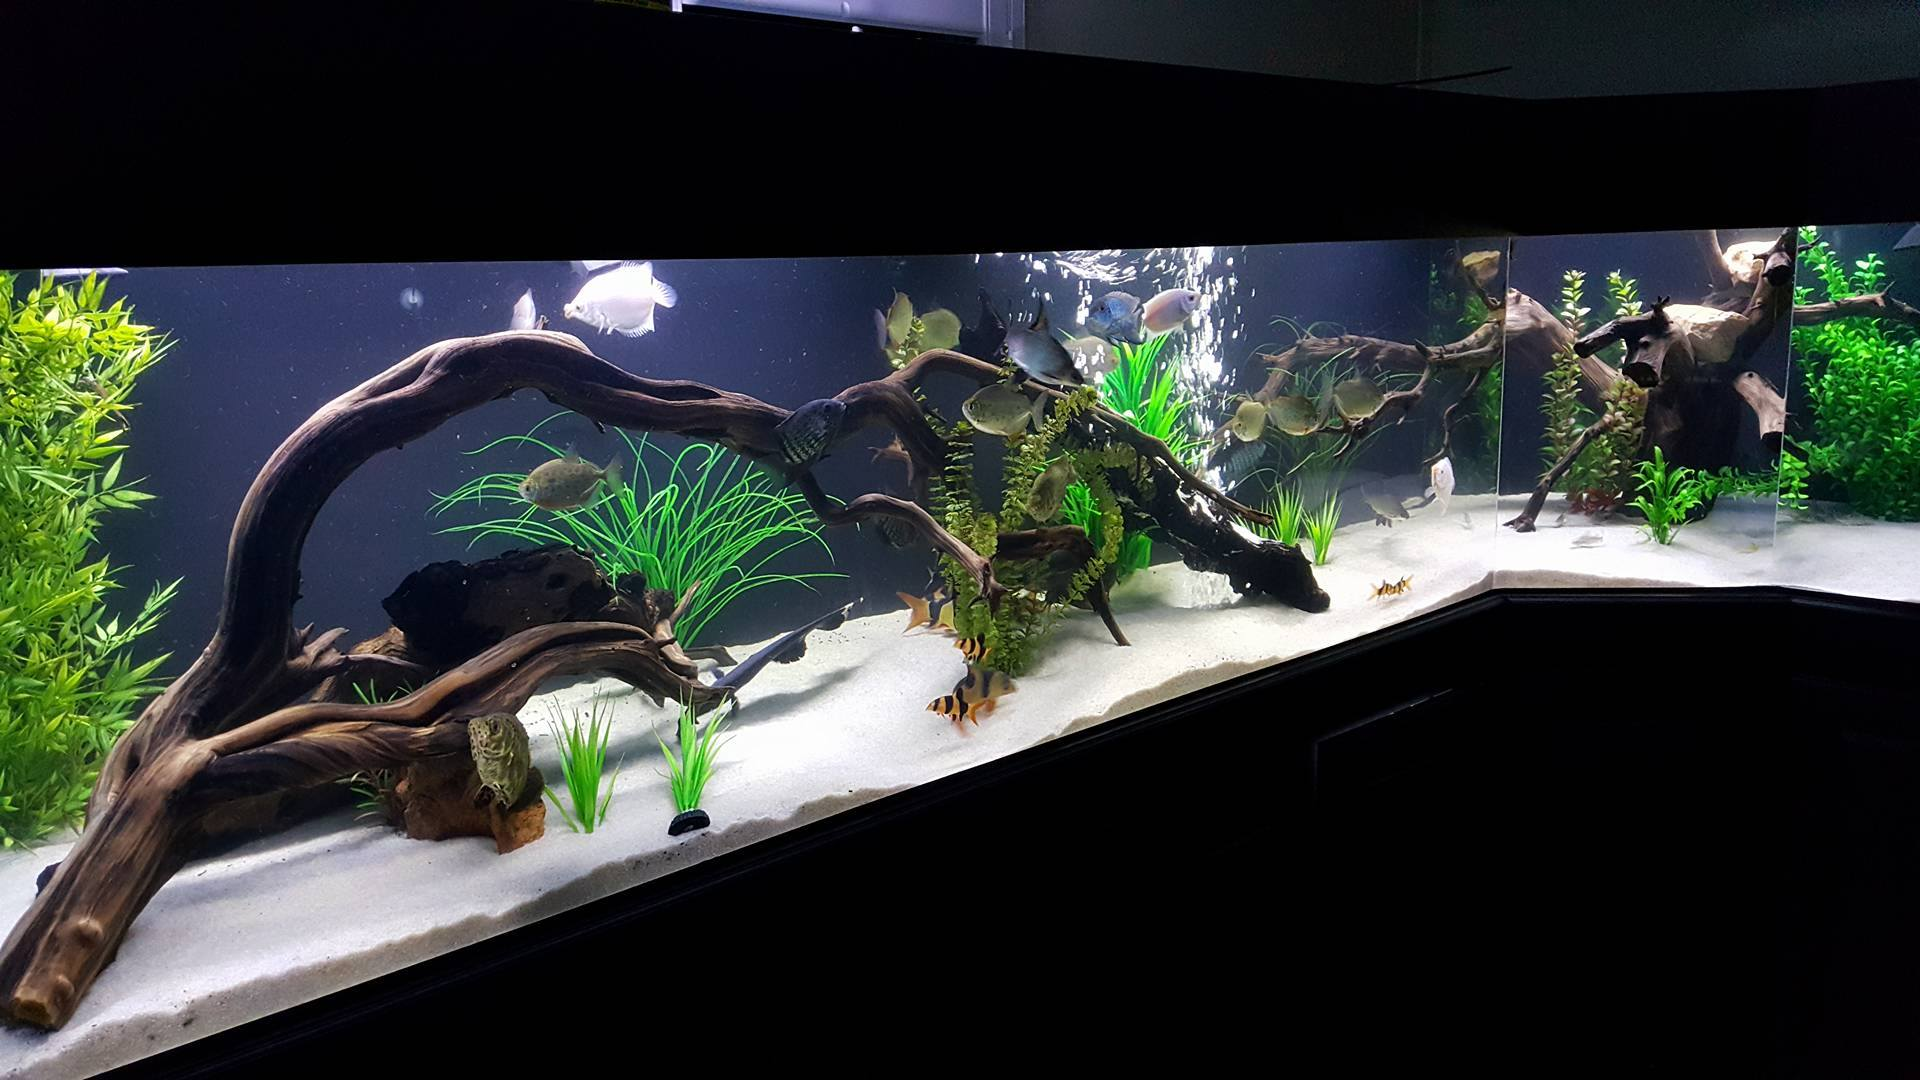 driftwood for sale for aquarium 1000 aquarium ideas